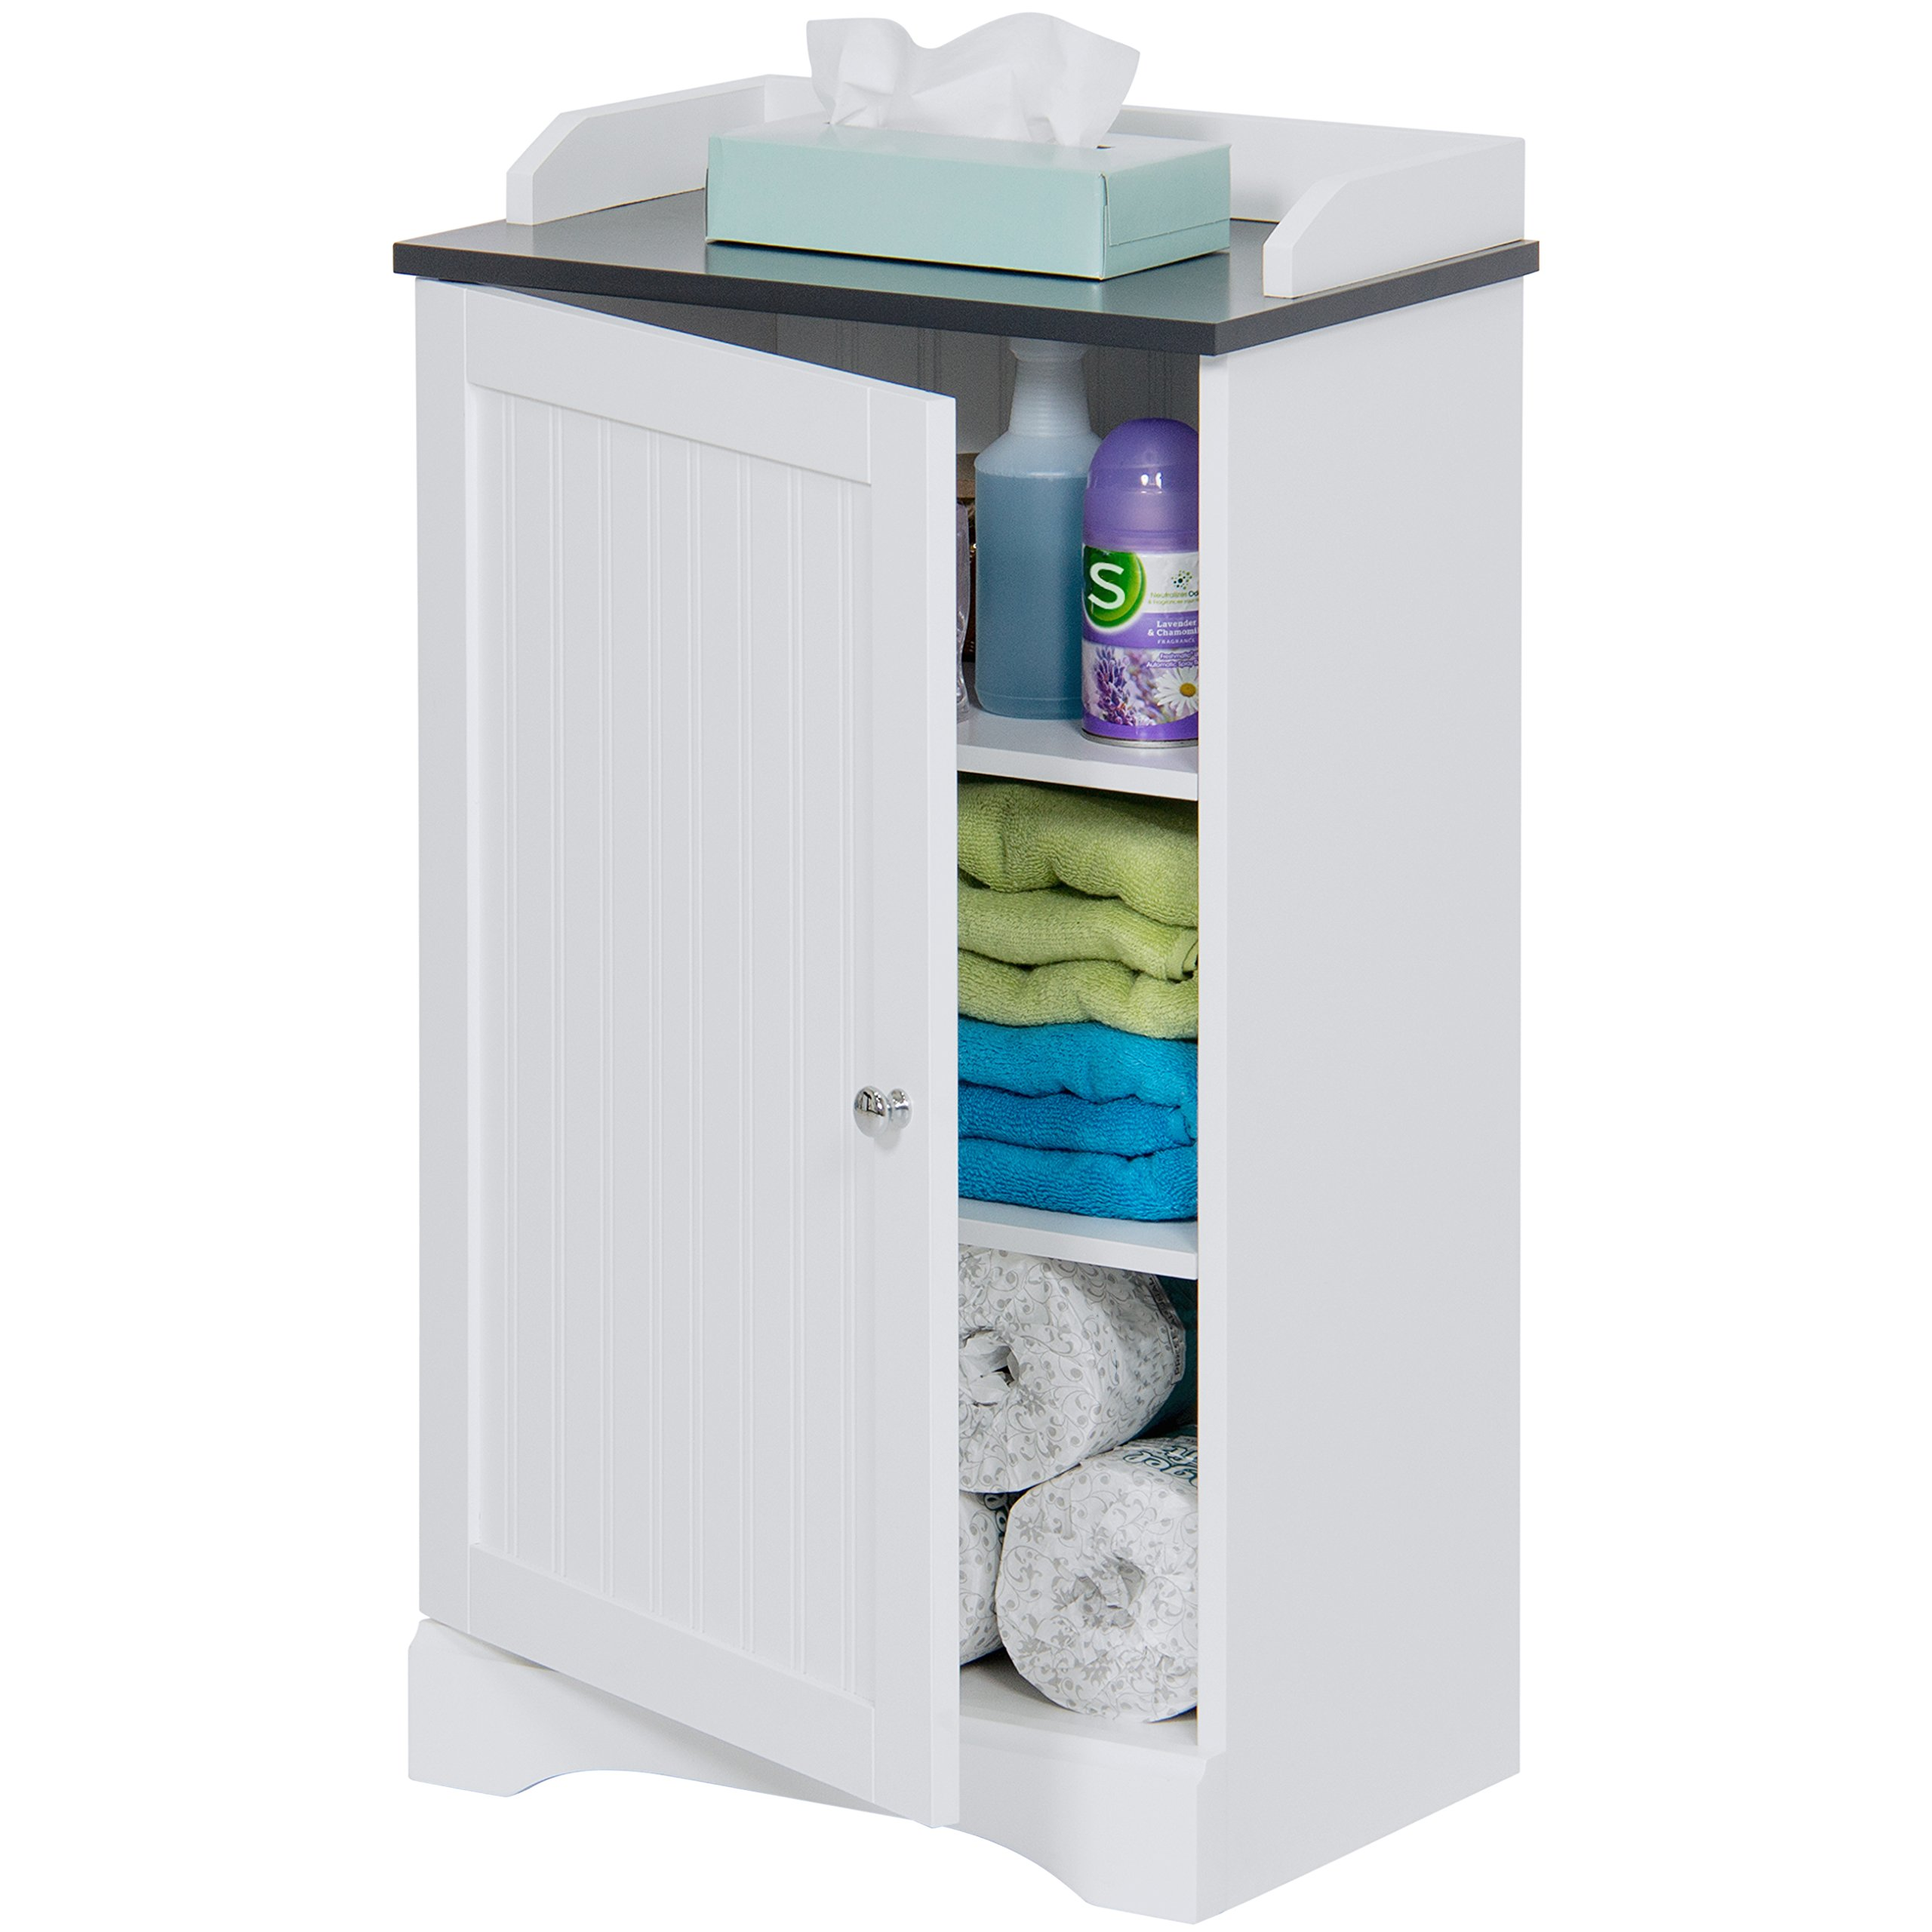 Best Choice Products Modern Contemporary Home Bathroom Floor Storage Organization Cabinet for Linens, Toiletries, Towels, Soap w/ 1 Bottom Shelf, 2 Adjusting Shelves, Versatile Door - White